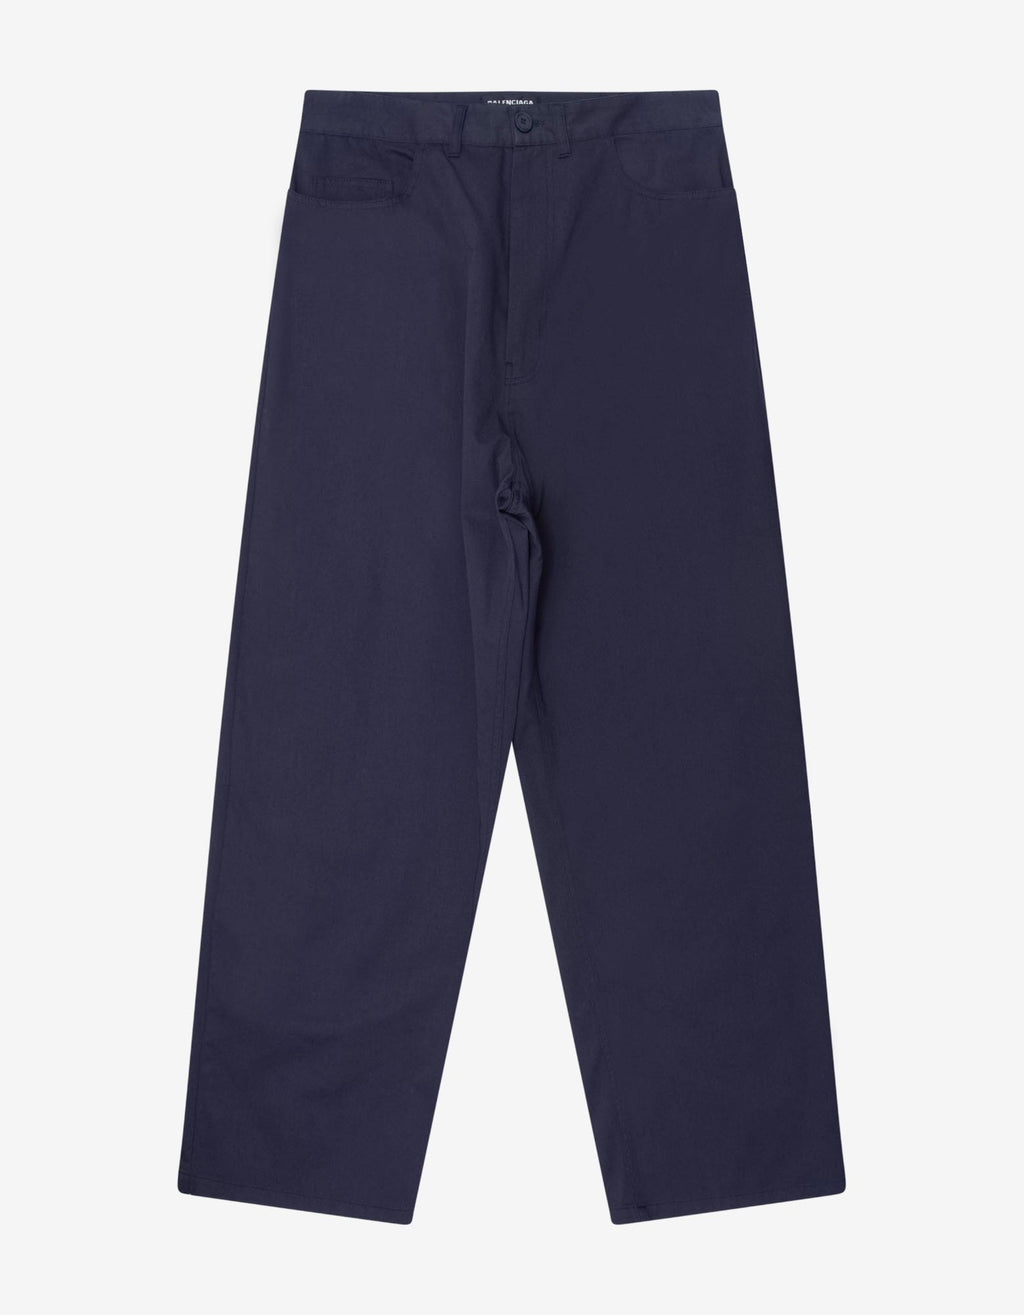 Navy Blue Baggy Chino Trousers -